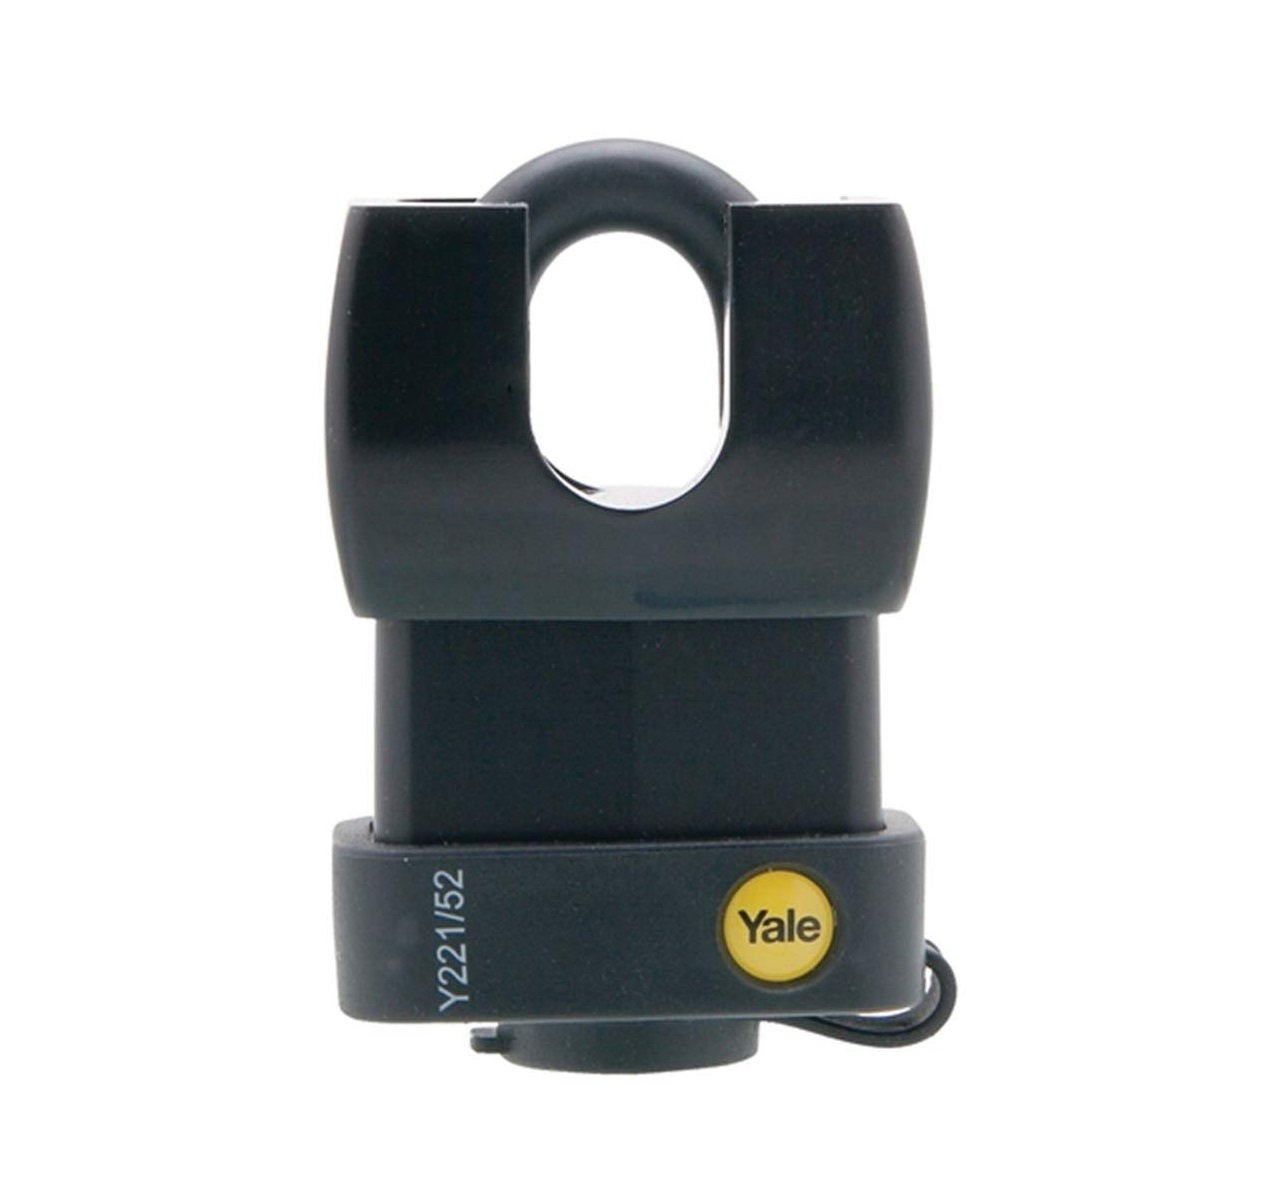 Yale Y221/61/130/1 61MM Weather Resistant Laminated Steel Padlock Comes With 3 Keys